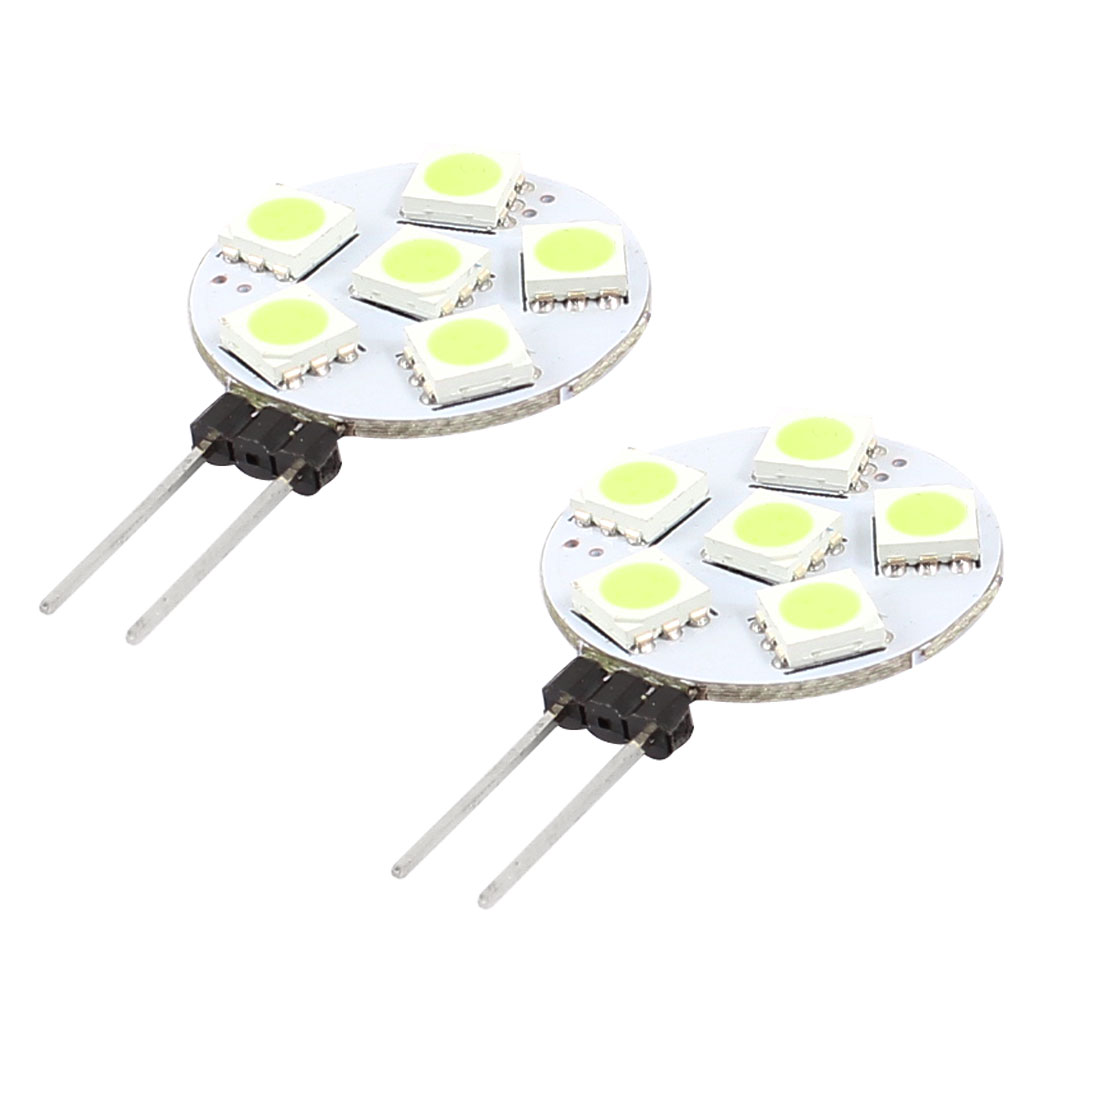 2 Pcs Car G4 6 LED 5050 SMD White Cabinet RV Boat light Bulb Lamp Internal